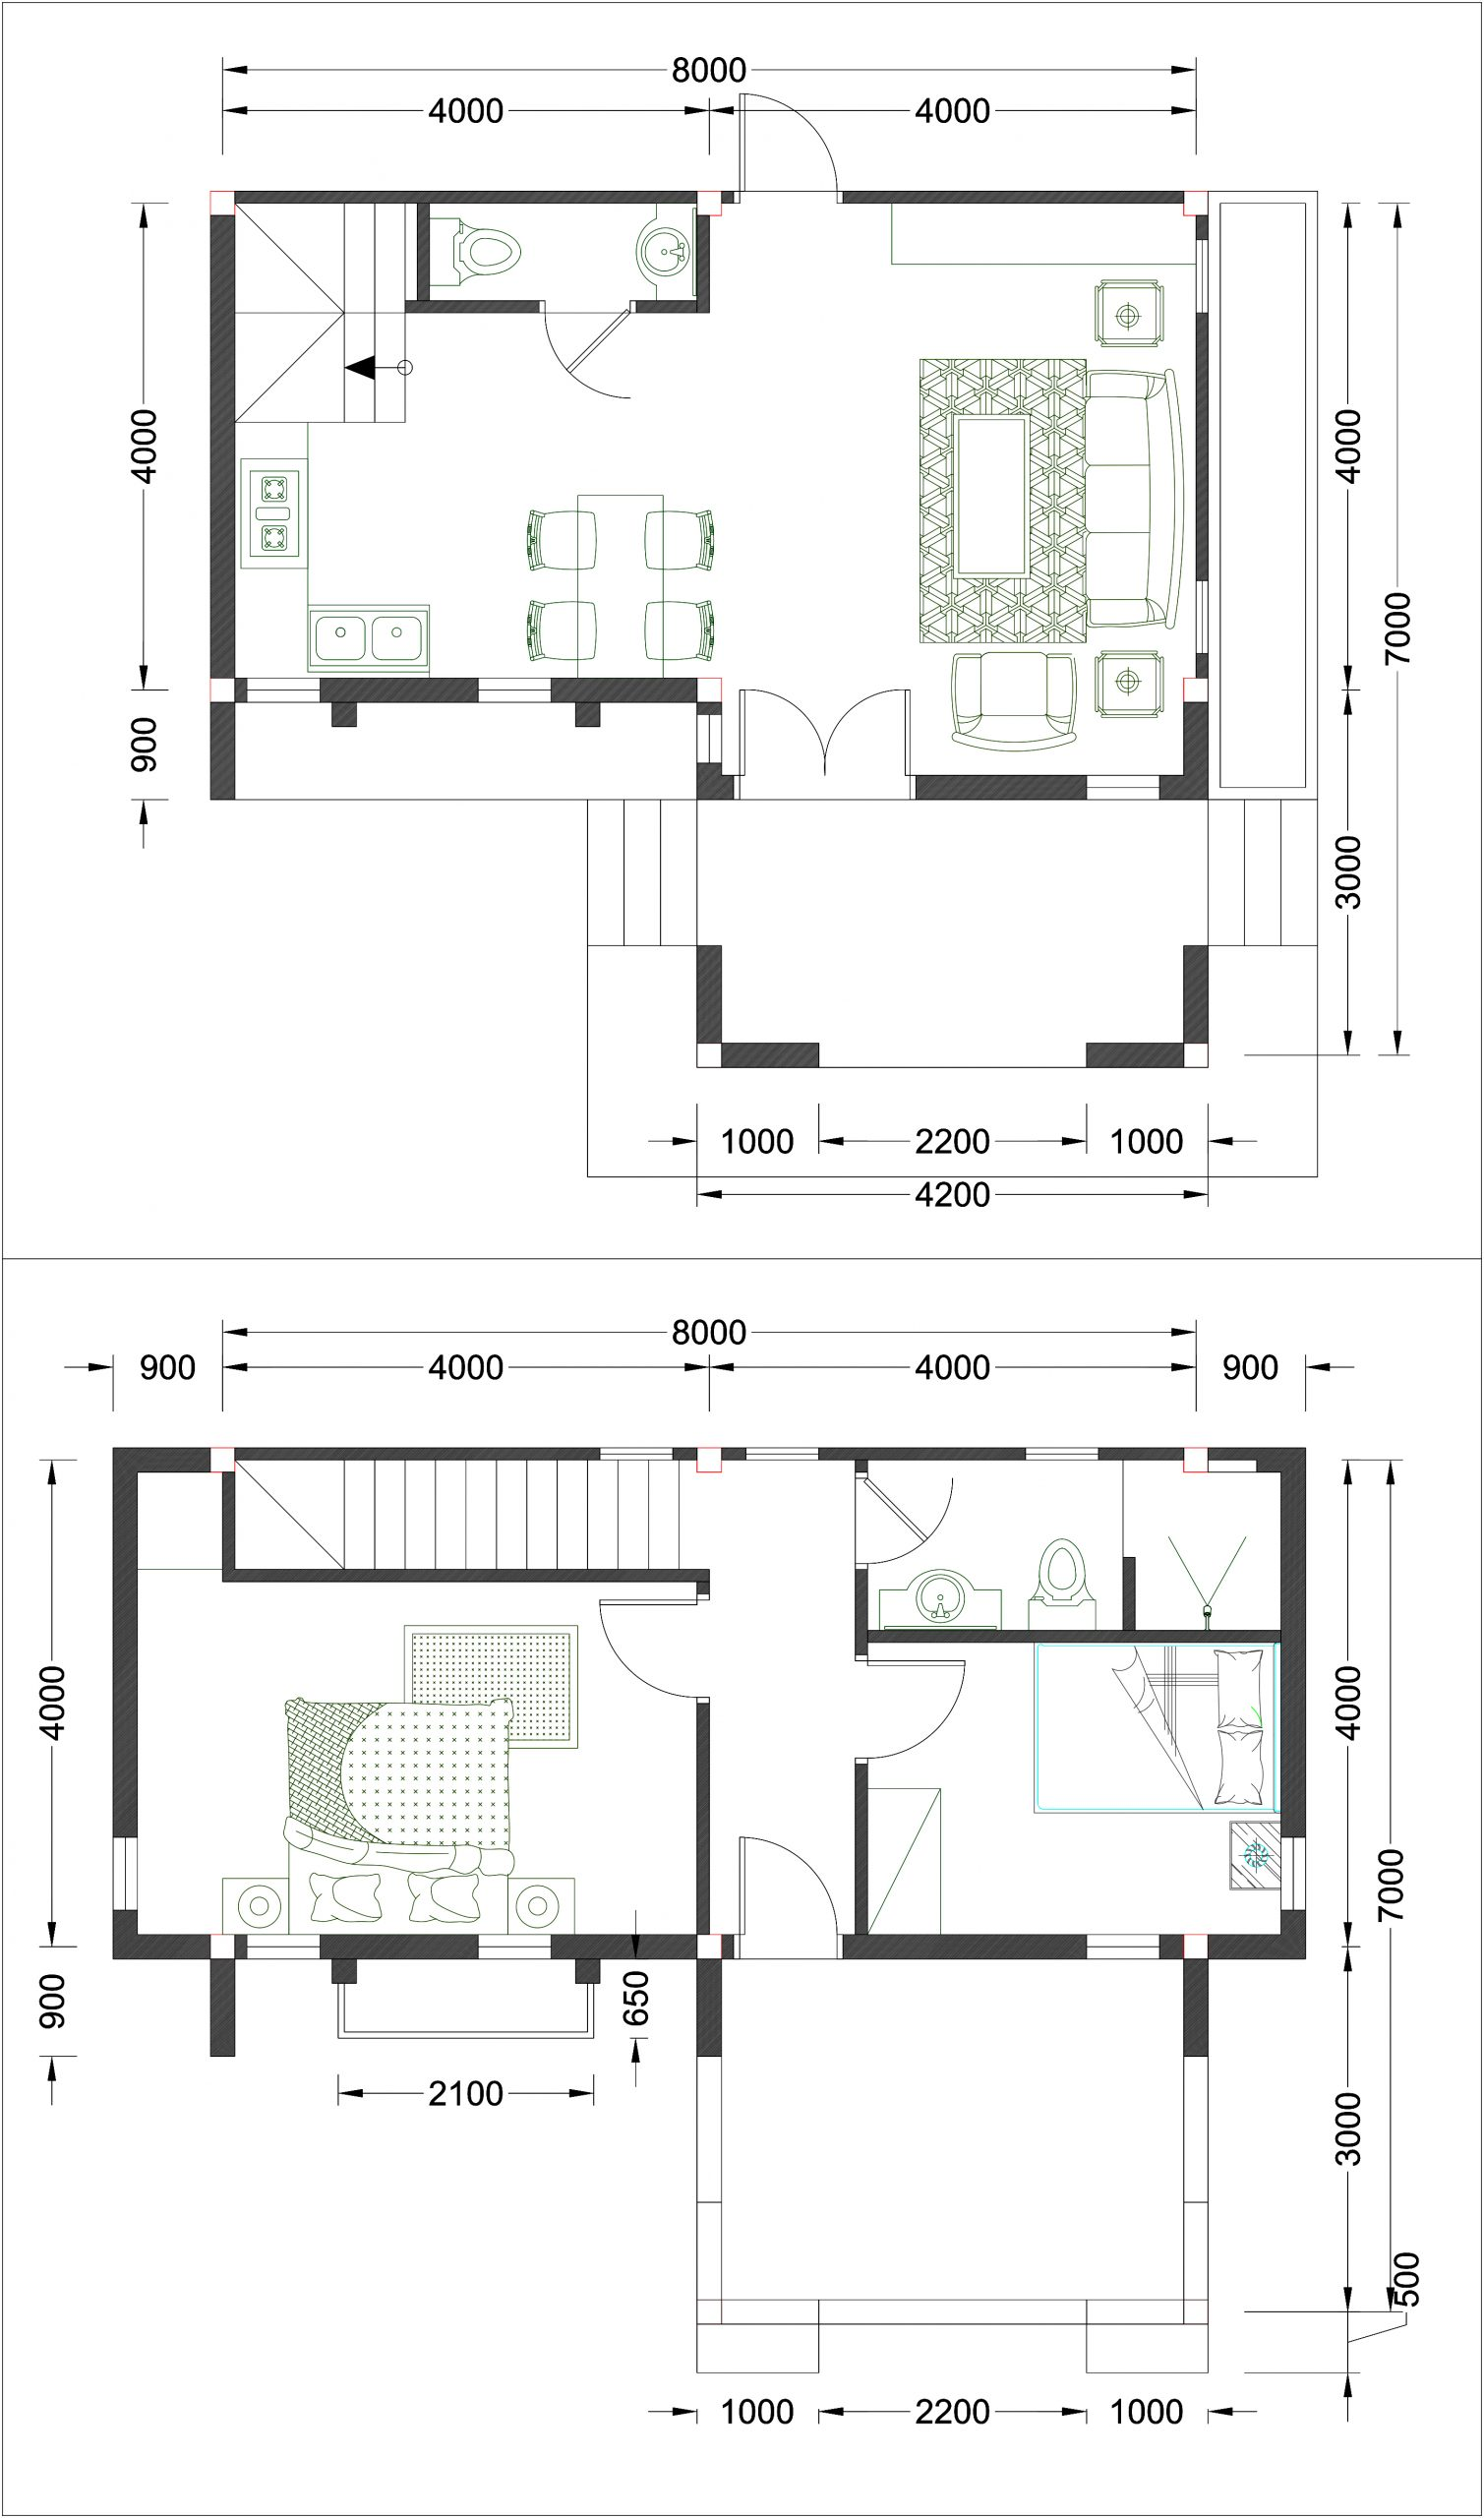 House Plans 8x7 with 2 Bedrooms floor plan